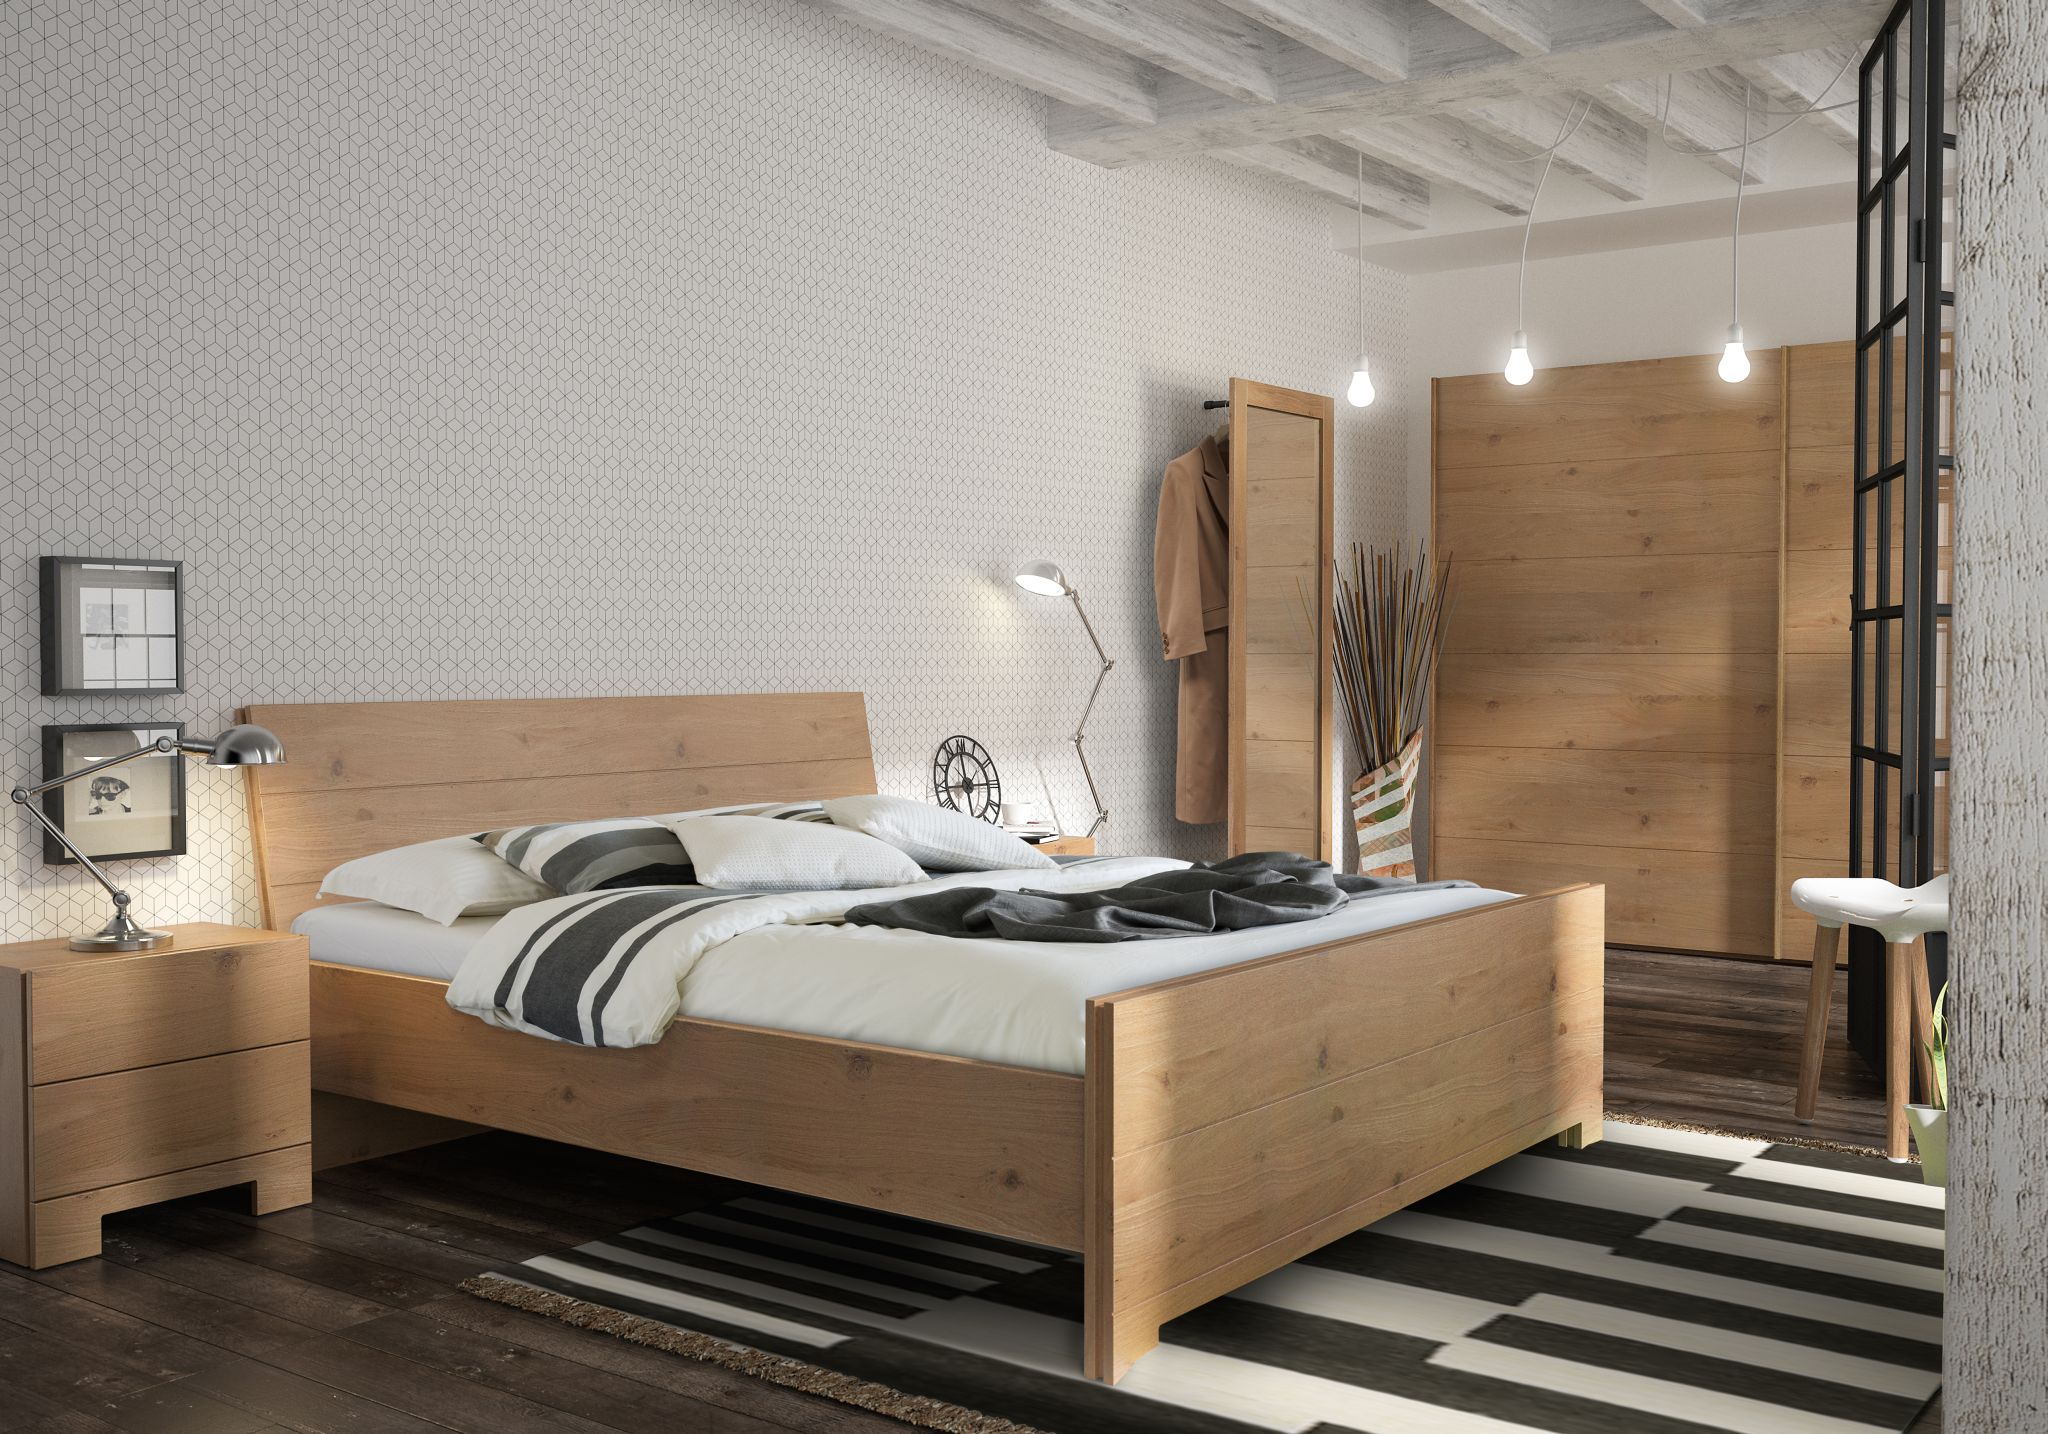 chambre coucher rustique m17ed meubelen joremeubelen jore. Black Bedroom Furniture Sets. Home Design Ideas